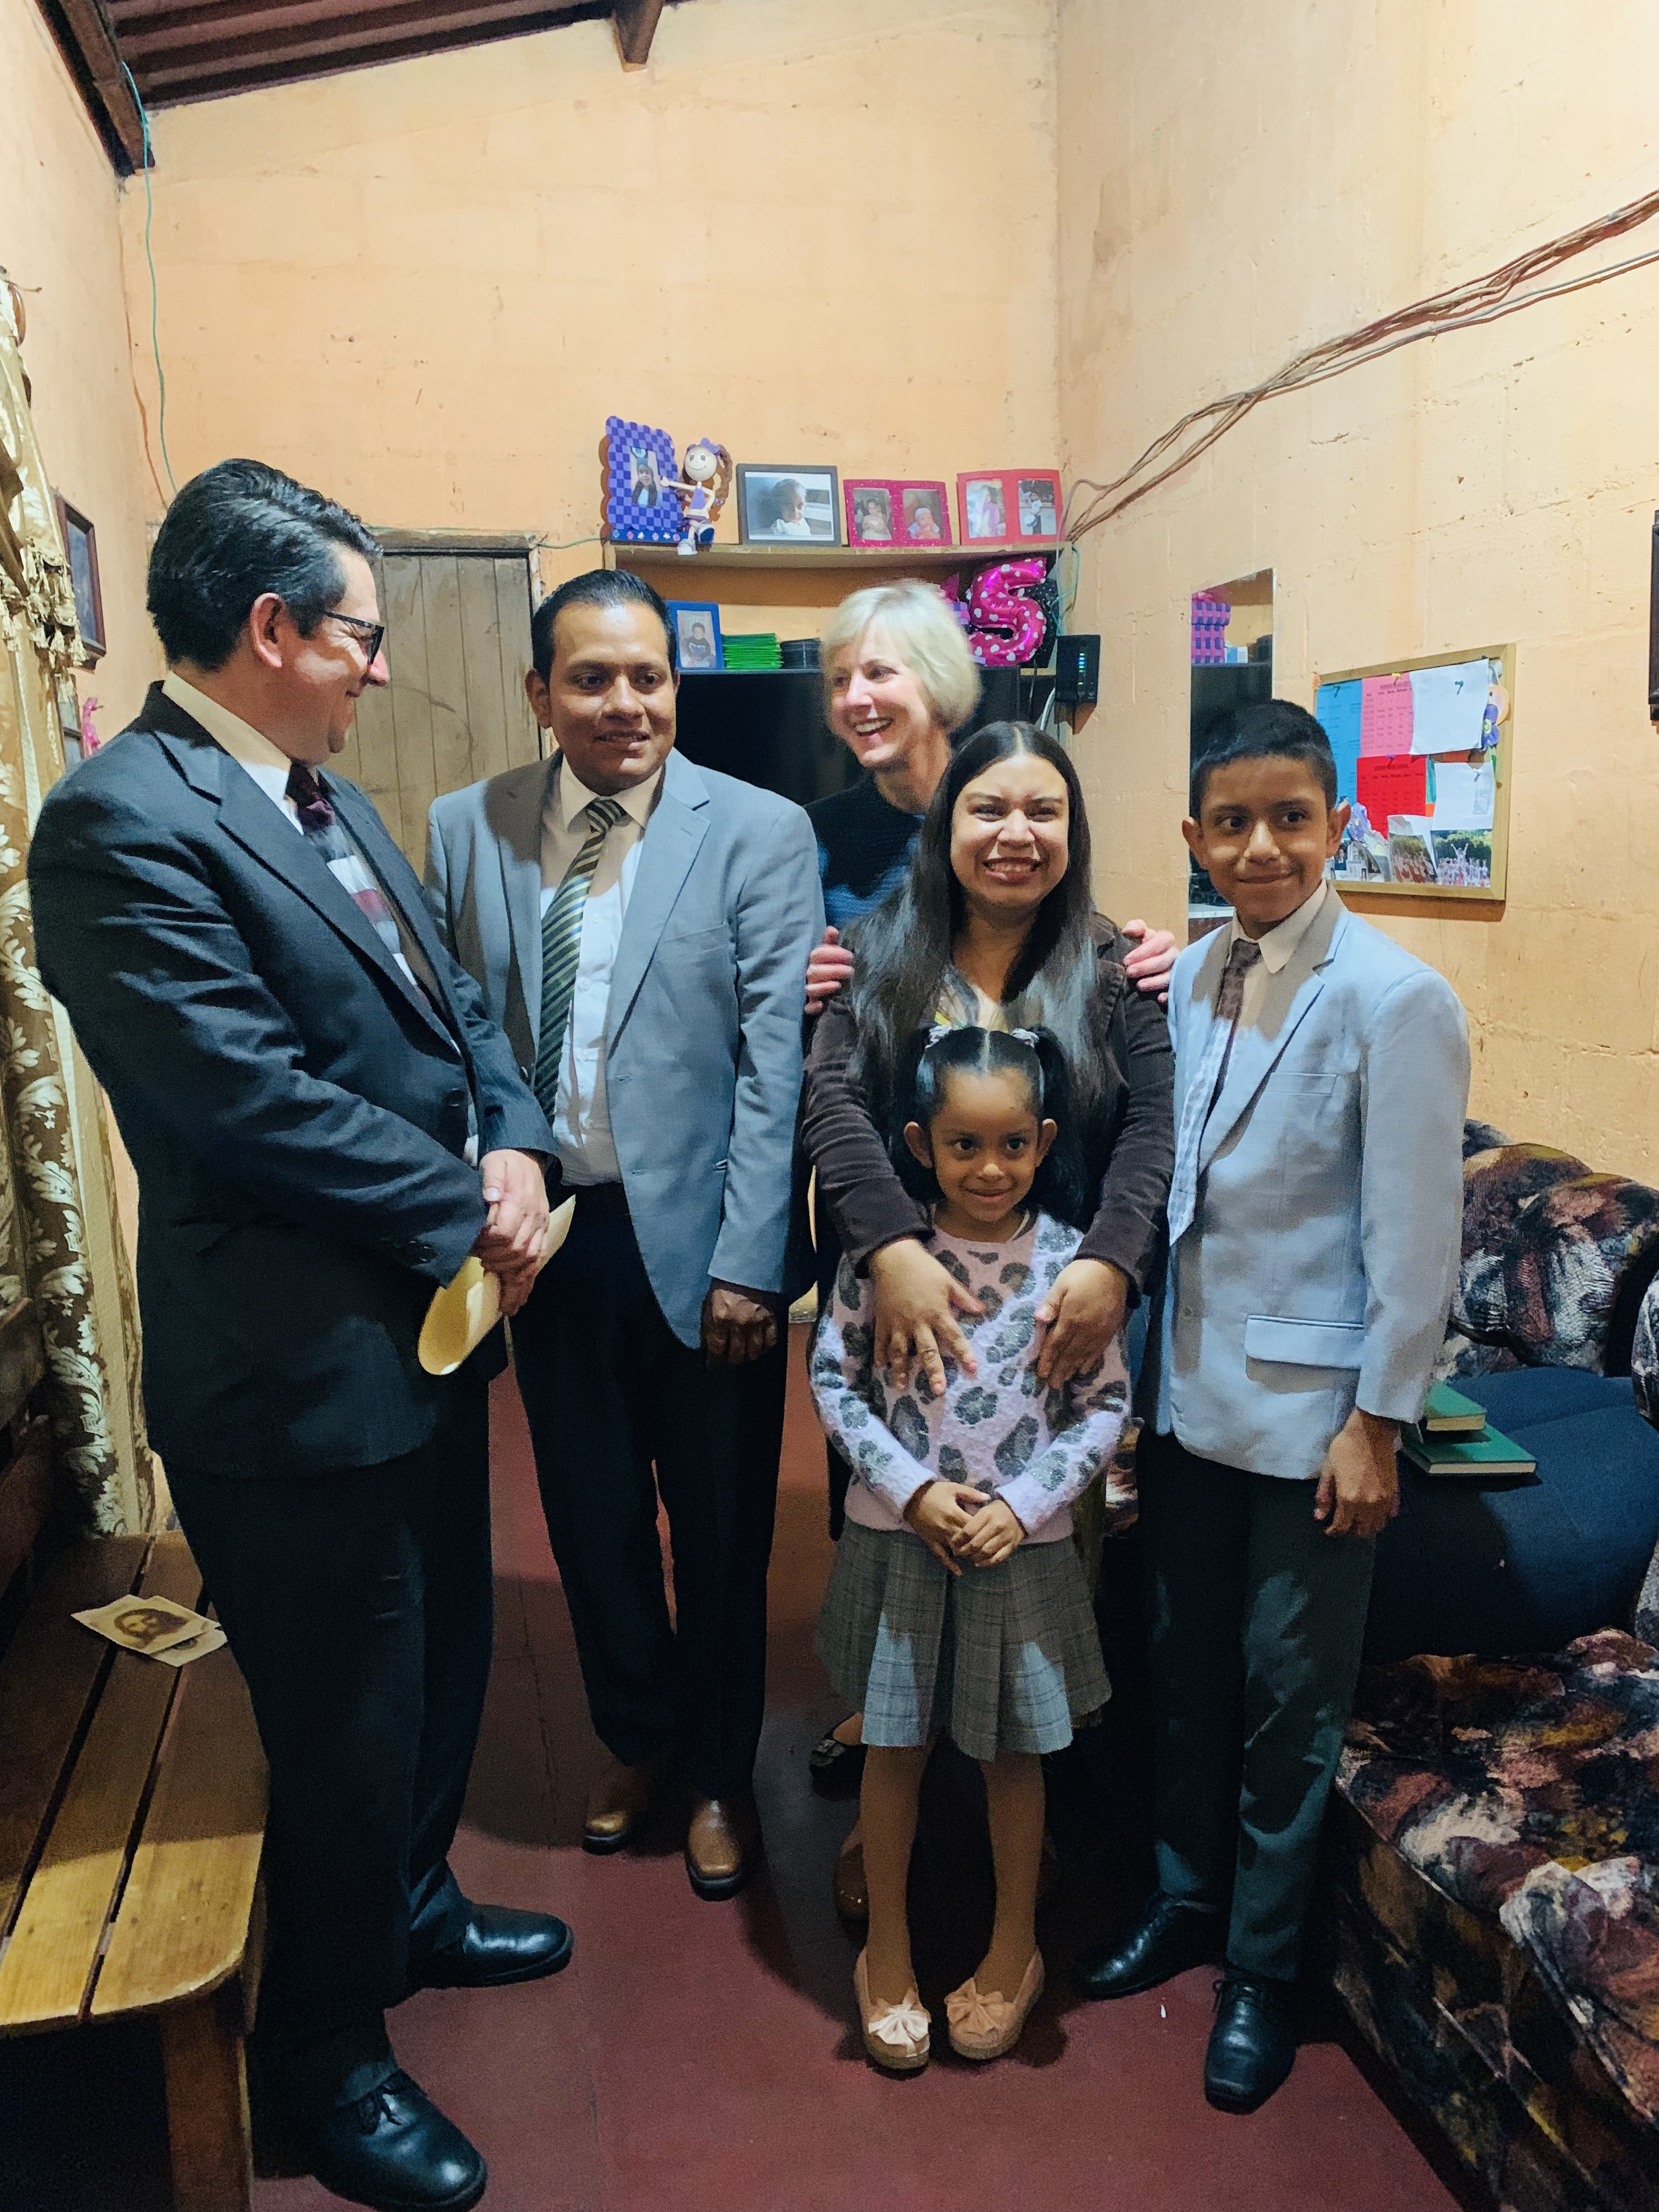 Sister Jean B. Bingham visits with the Herrera Benites family in Antigua, Guatemala during a recent ministering trip to Central America in September 2019.